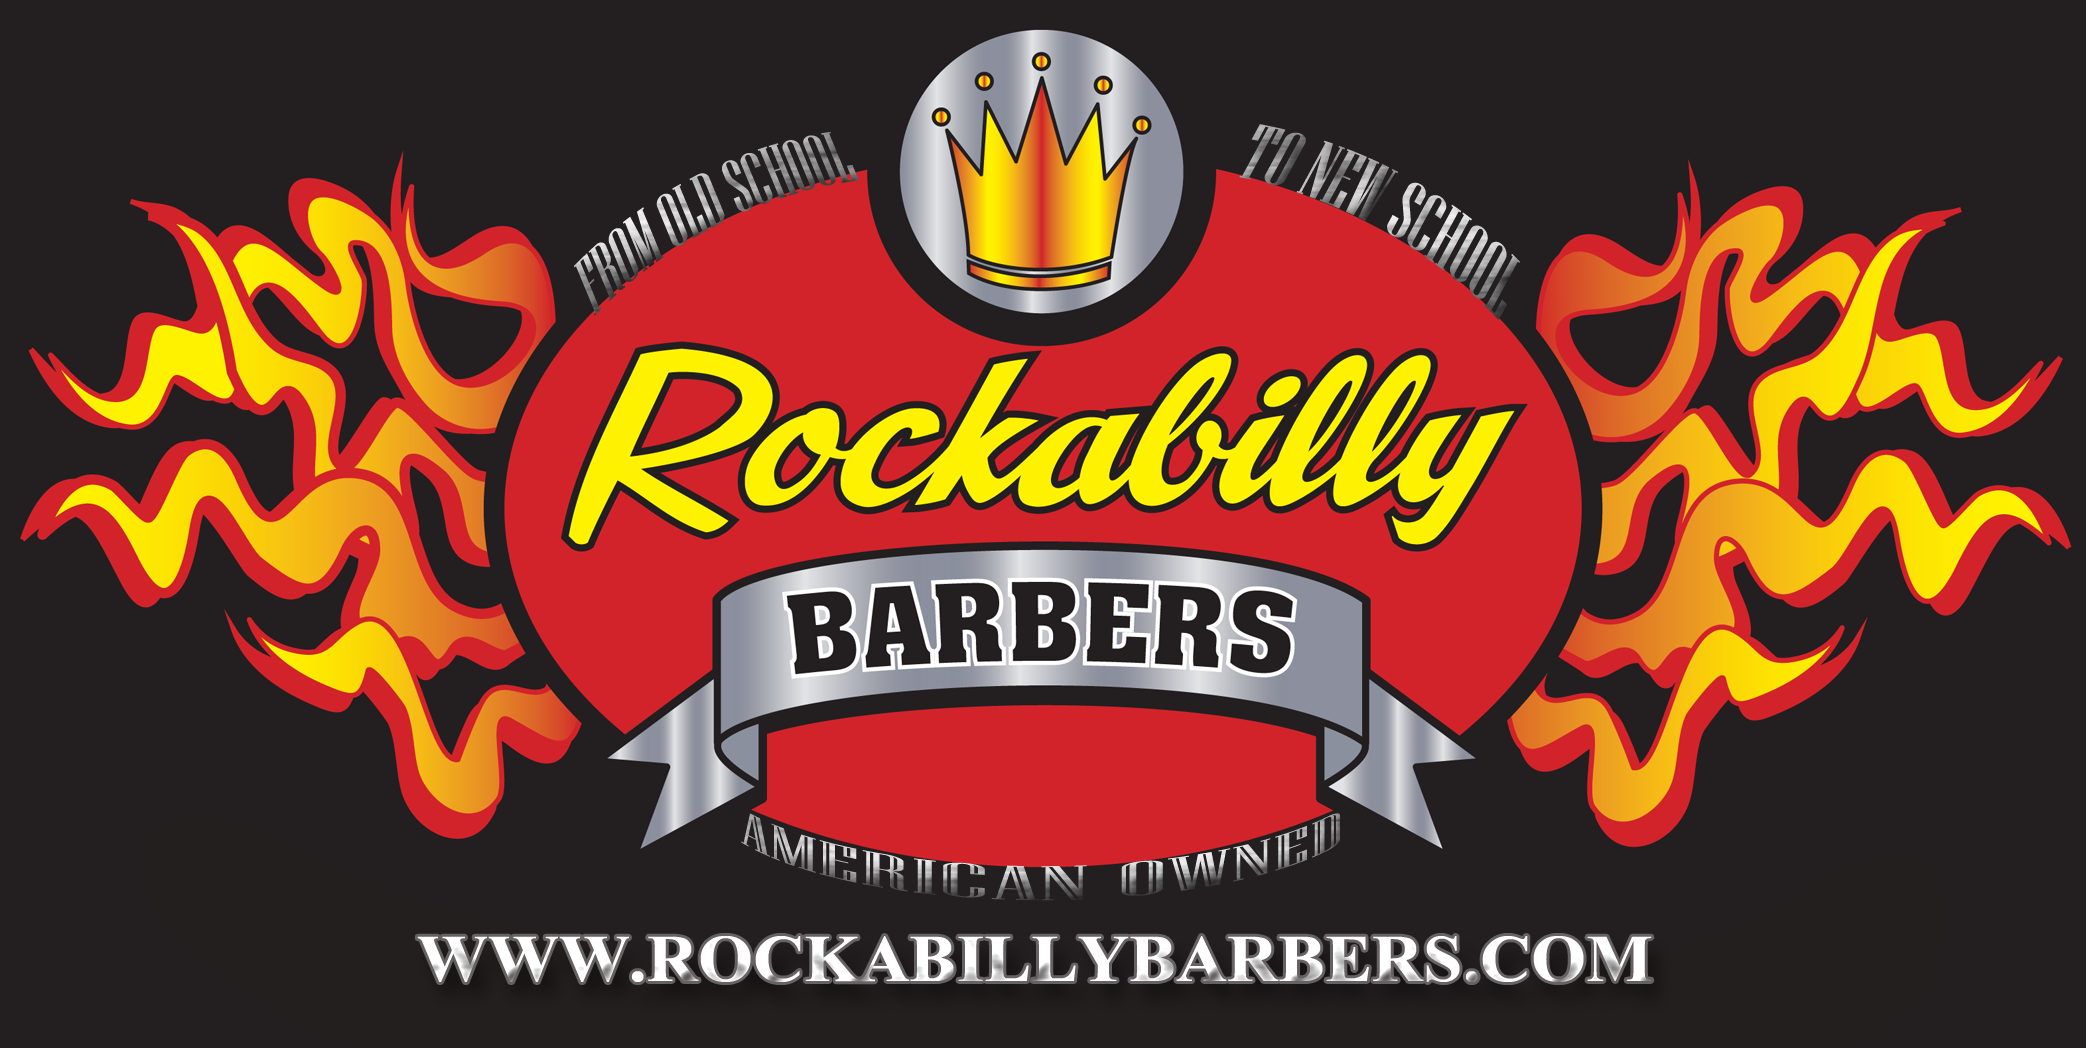 Rockabilly Barbers